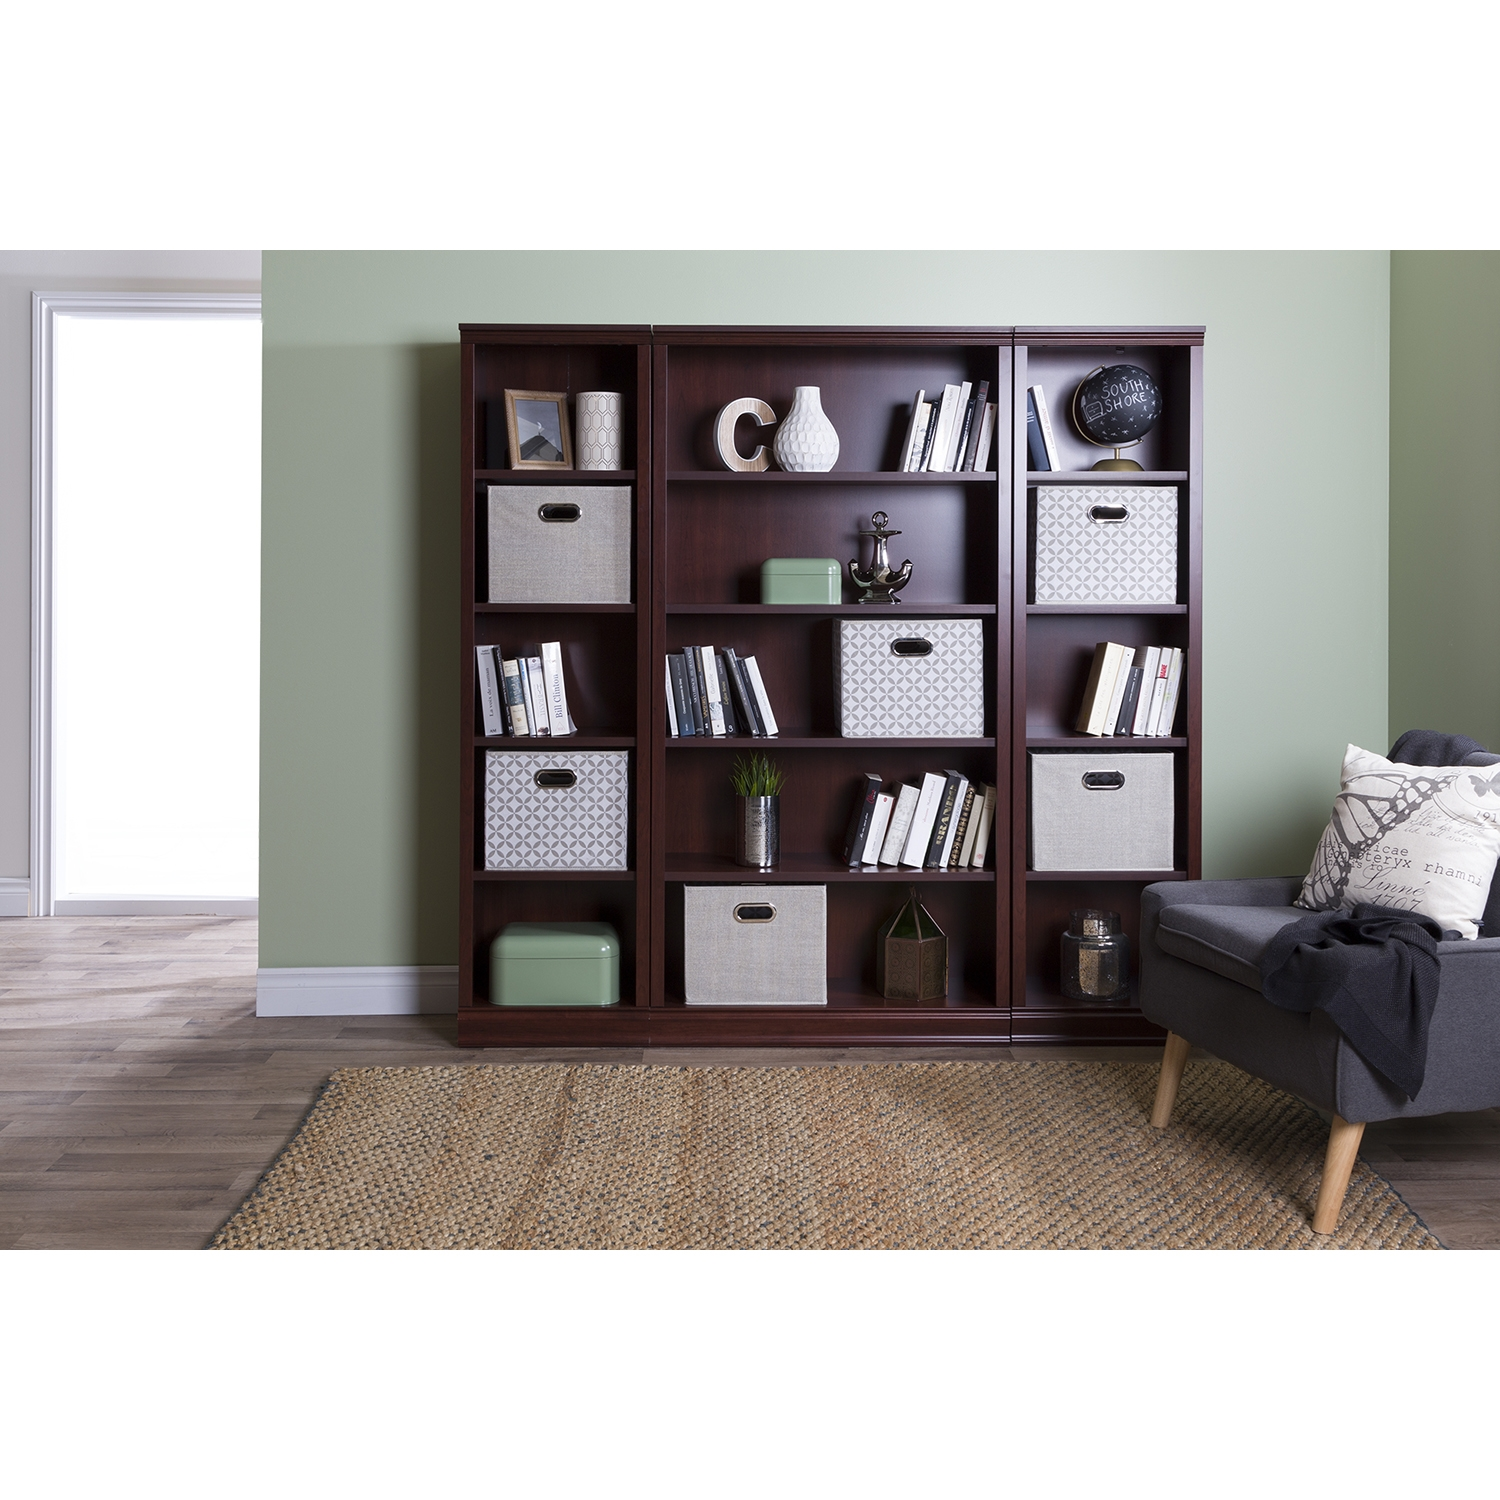 Morgan 5 Shelves Bookcase - Royal Cherry - SS-10150